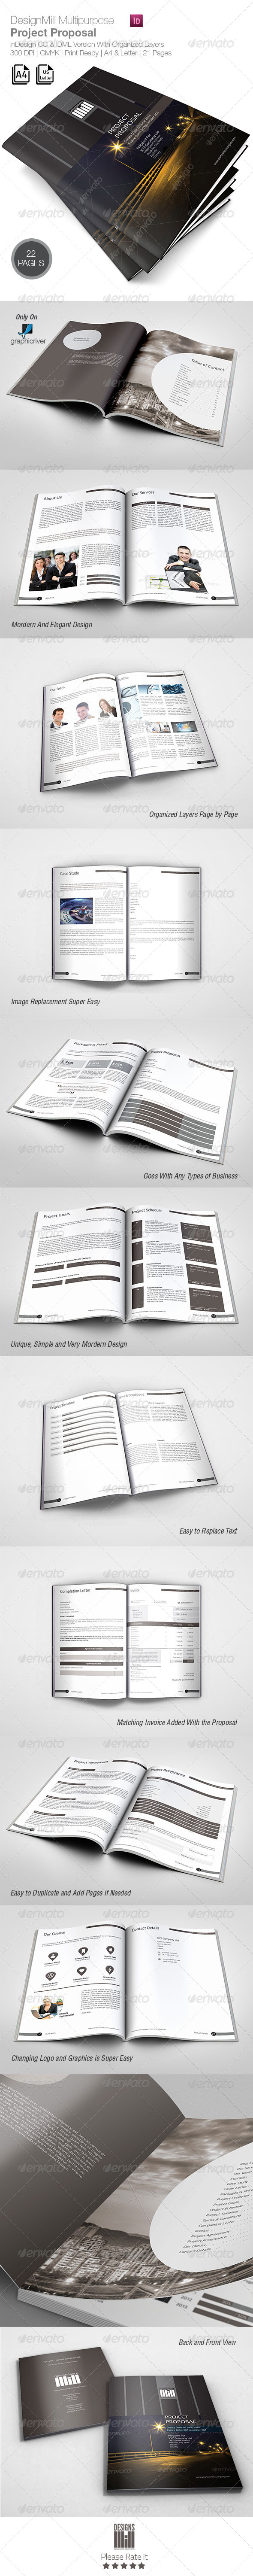 DesignsMill Multipurpose Proposal - Proposals & Invoices Stationery